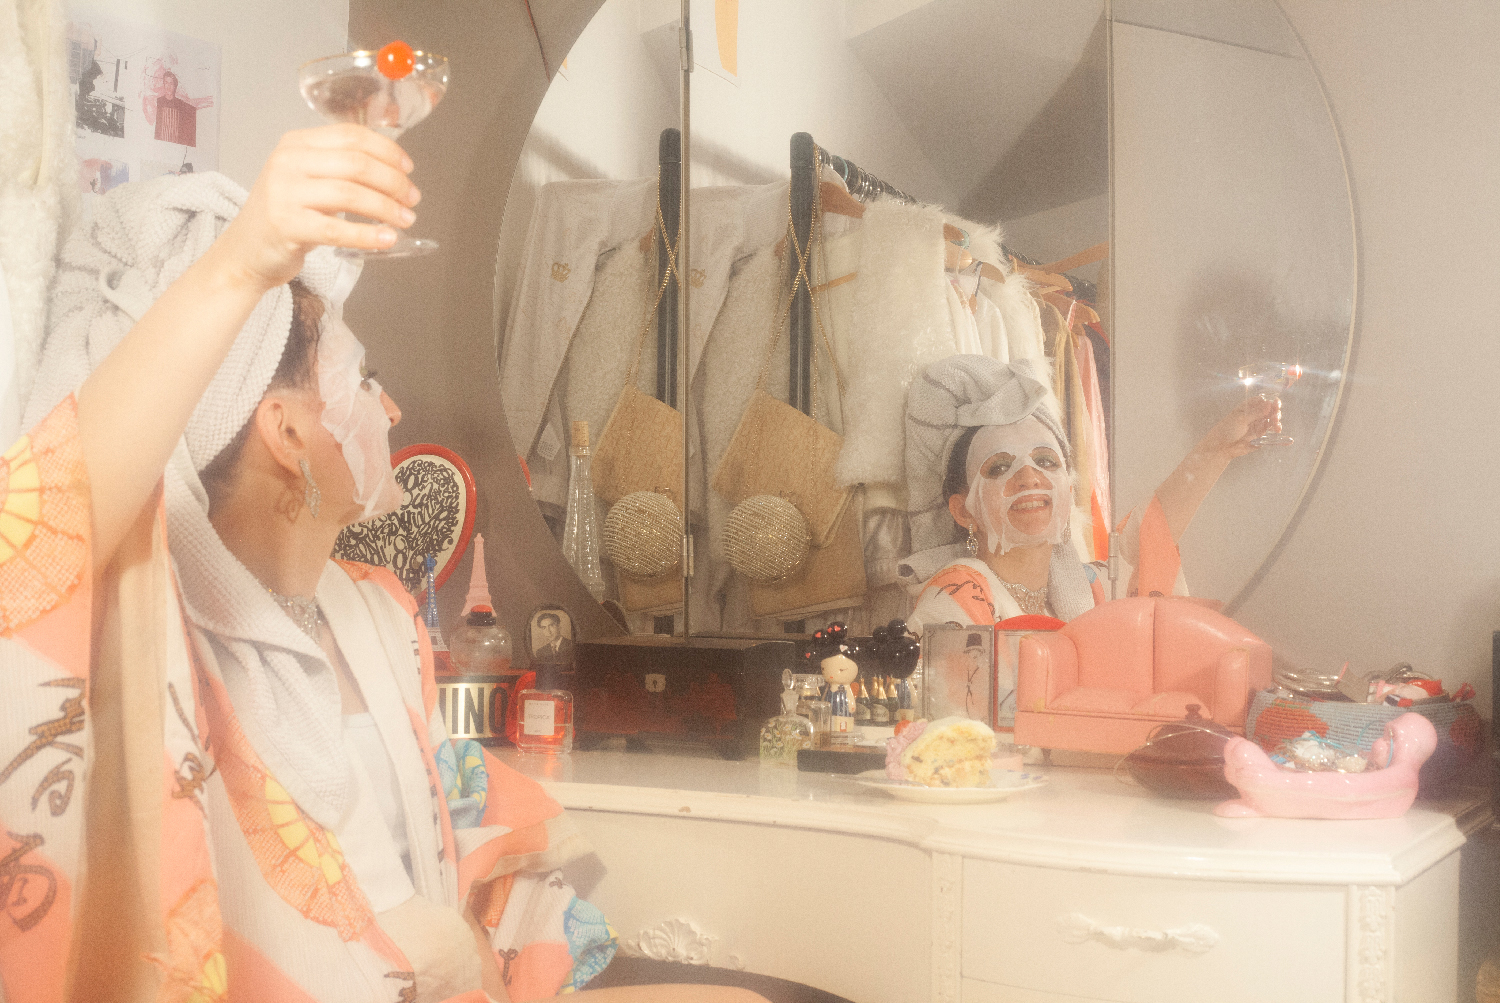 Woman wearing towel and face mask in front of mirror raising a cocktail glass